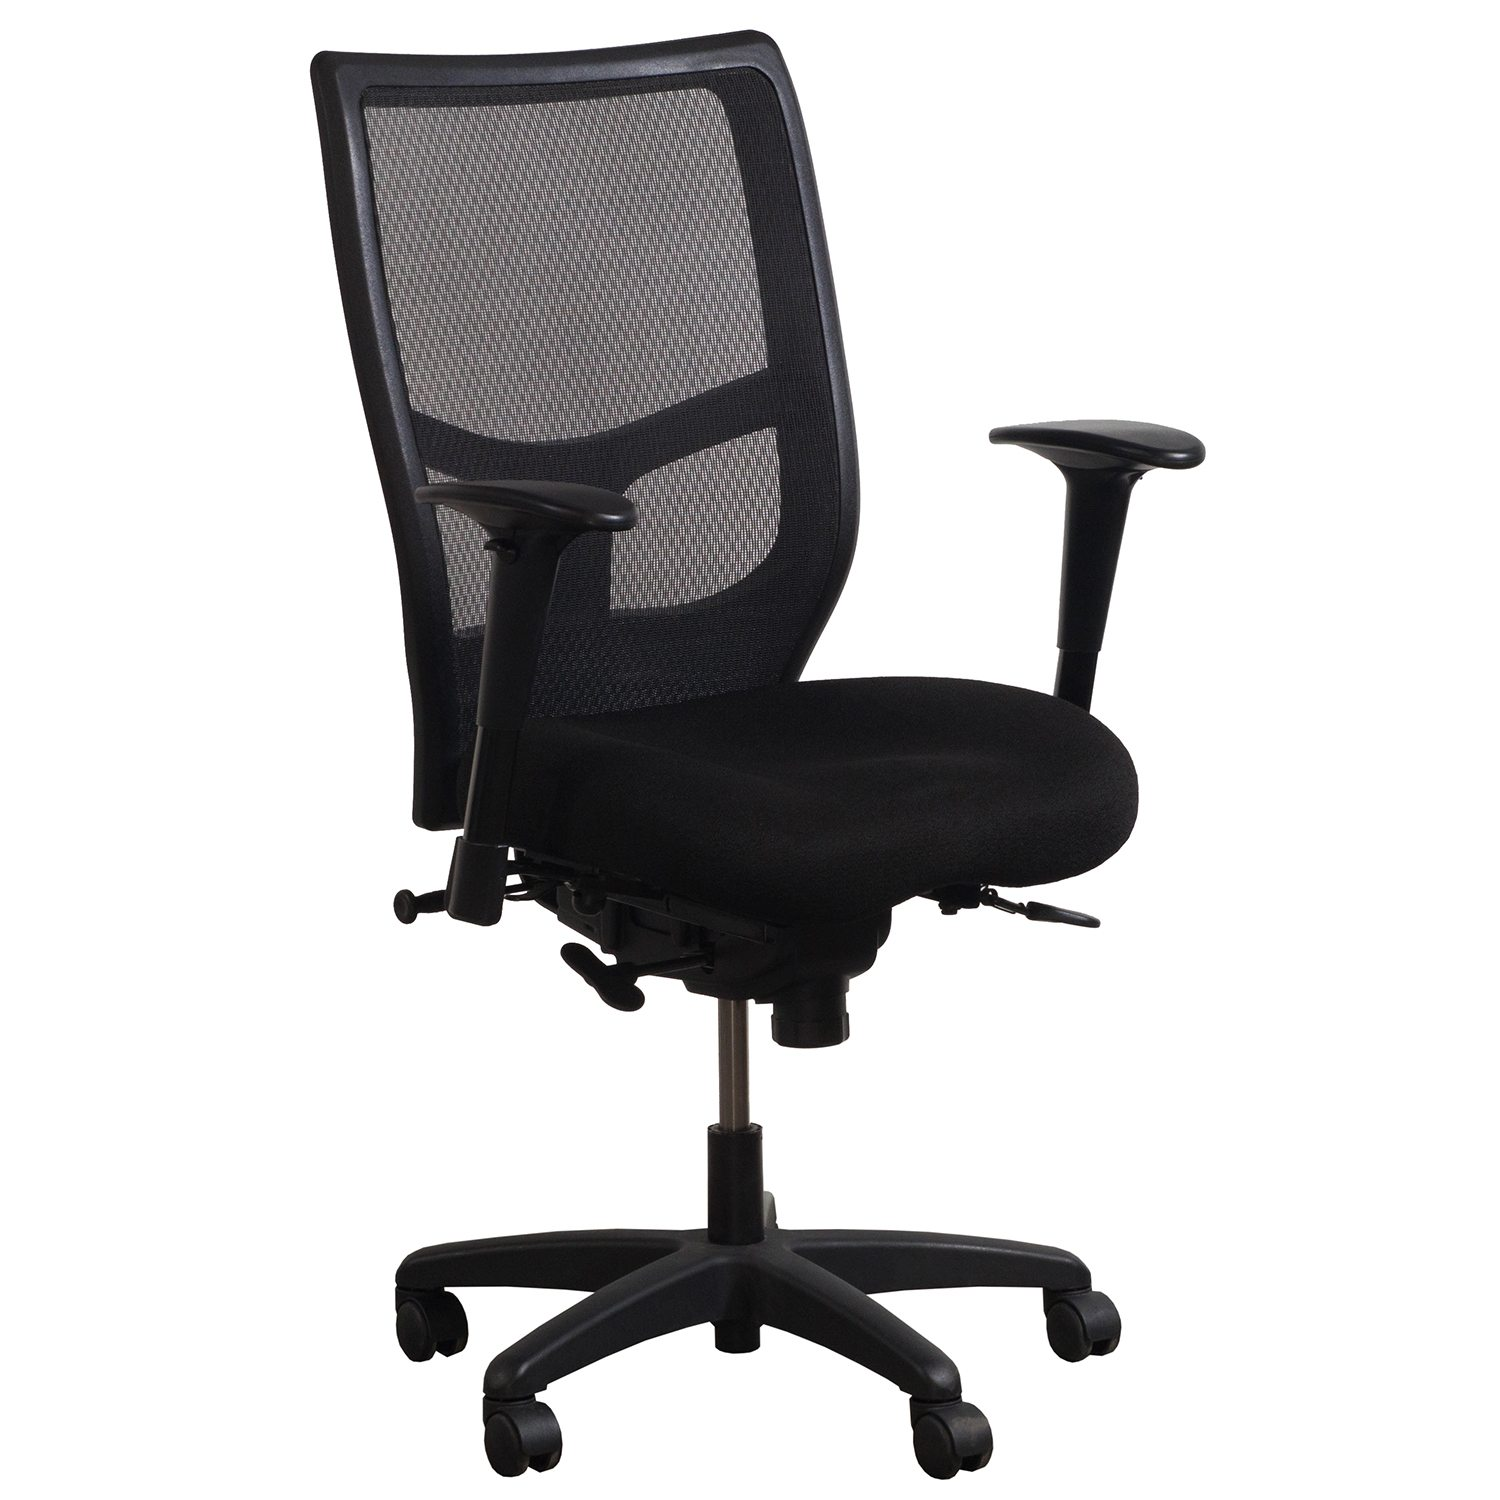 Ki Chairs Ki Impress Ultra Used Mesh Task Chair Black National